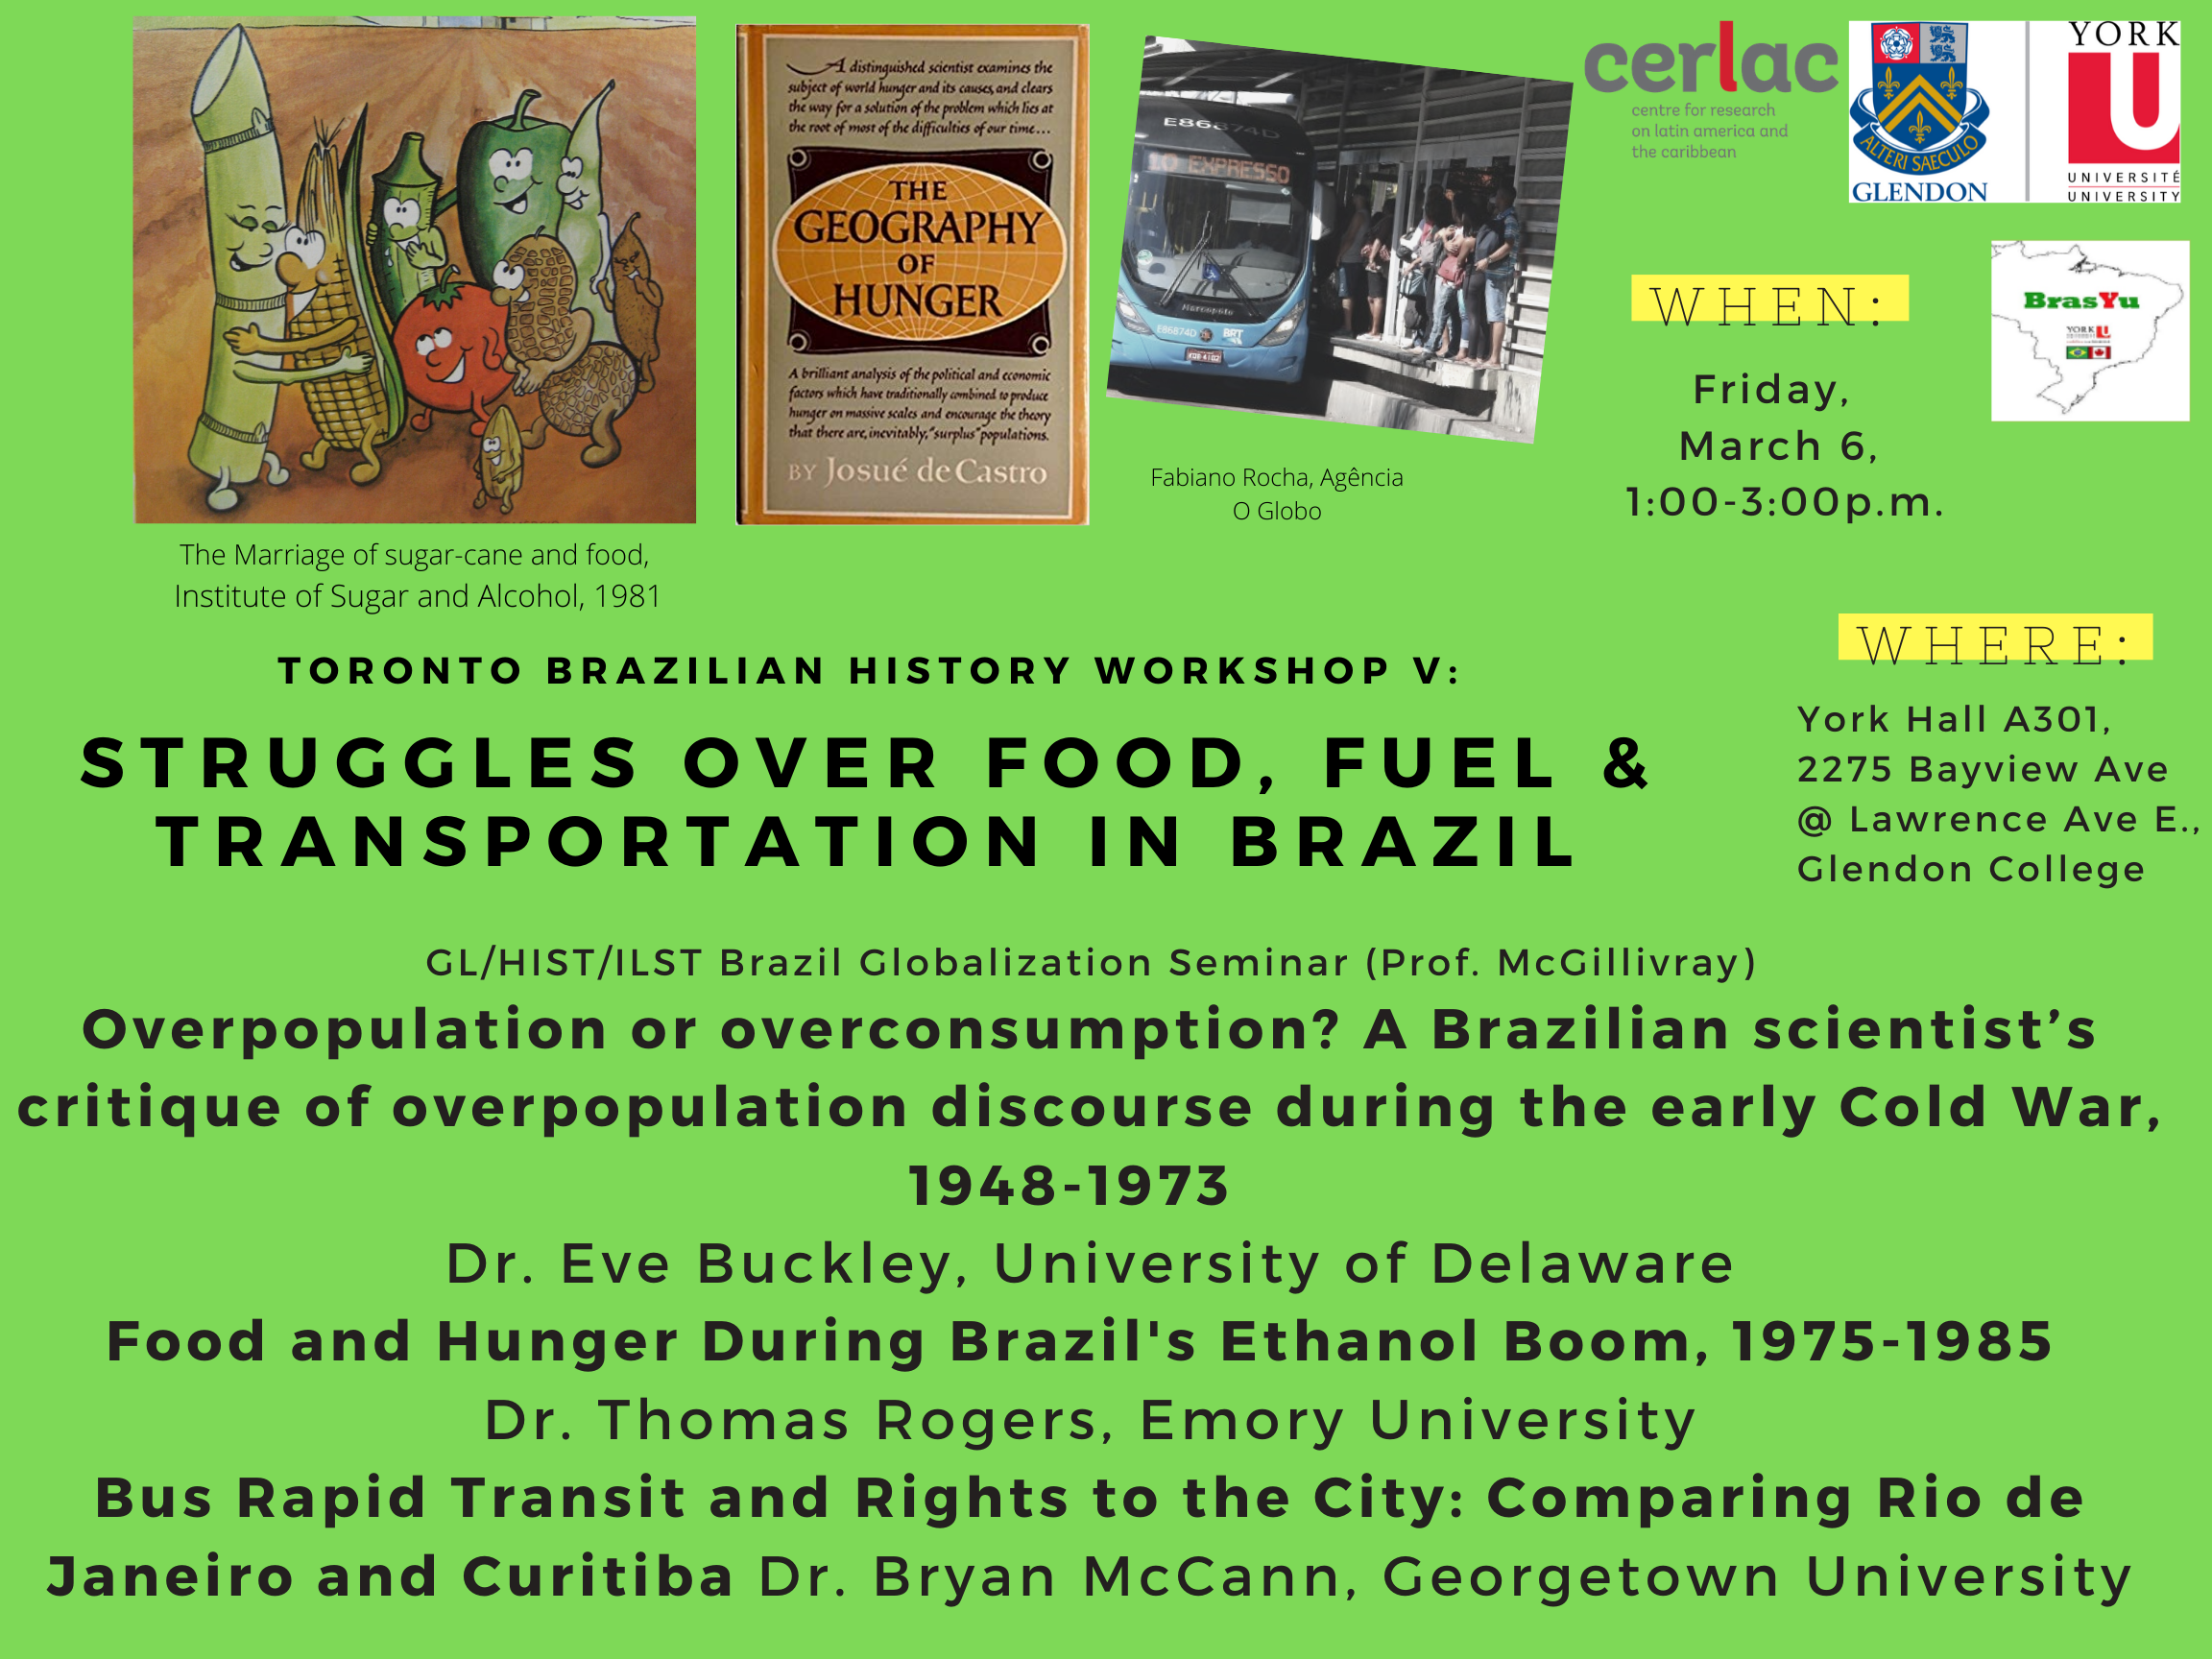 Struggles over Food, Fuel & Transportation in Brazil @ York Hall A301 - Glendon College